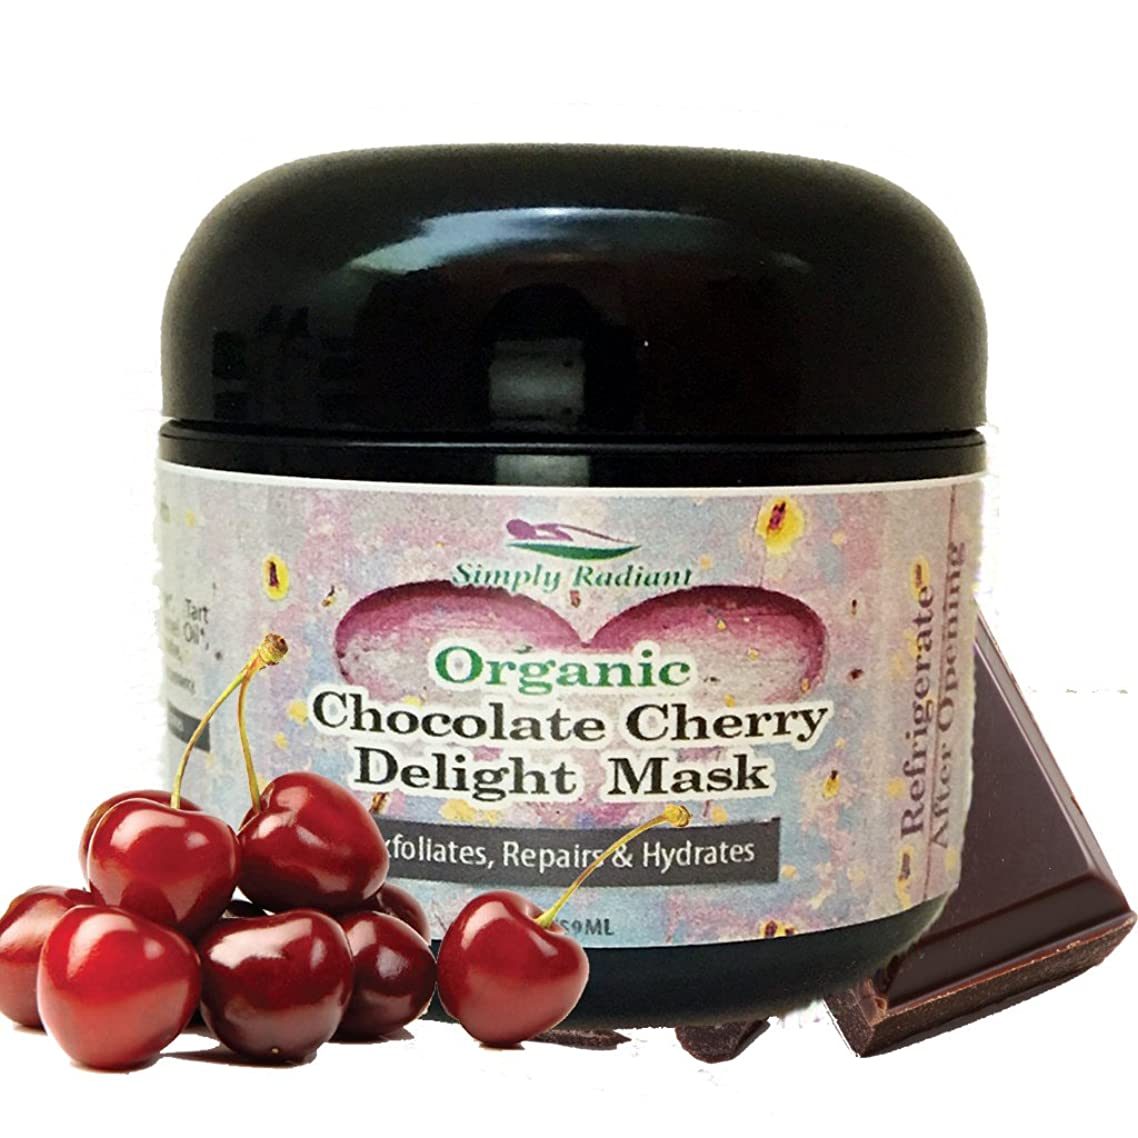 Organic Chocolate Cherry Facial Mask 2 oz – For Deep Cleansing & Exfoliation - Brightening Face Mask Evens Tone and Provides Deep Moisturization For Firm, Radiant Skin – Simply Radiant